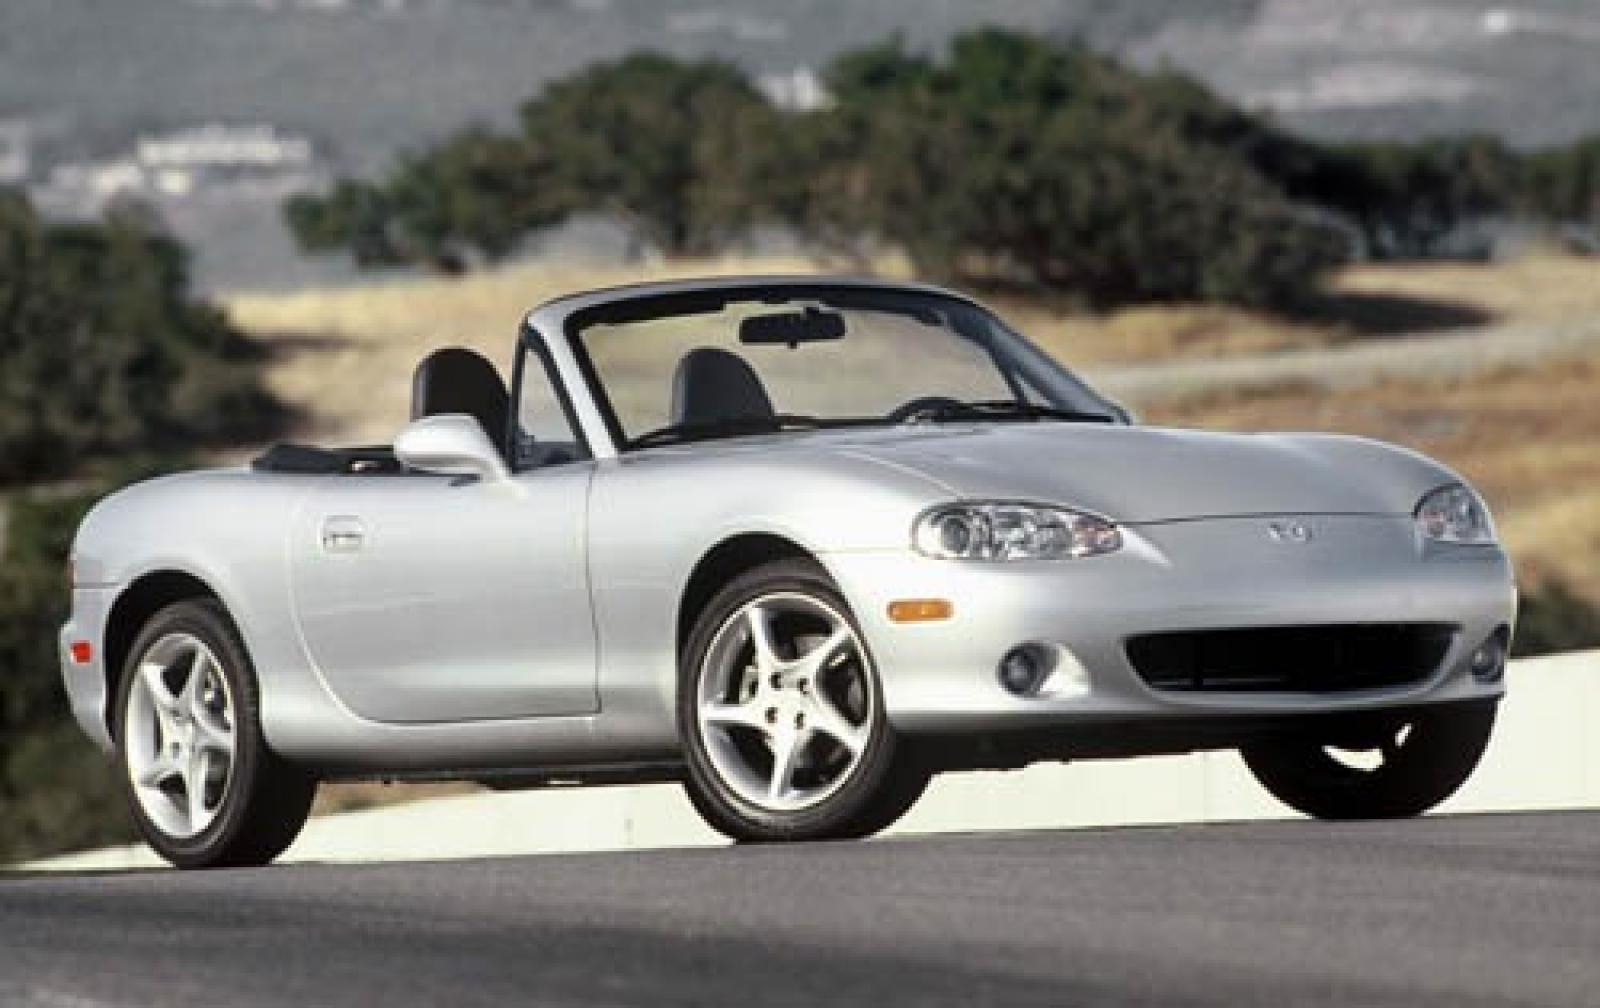 2004 mazda mx 5 miata information and photos zombiedrive. Black Bedroom Furniture Sets. Home Design Ideas